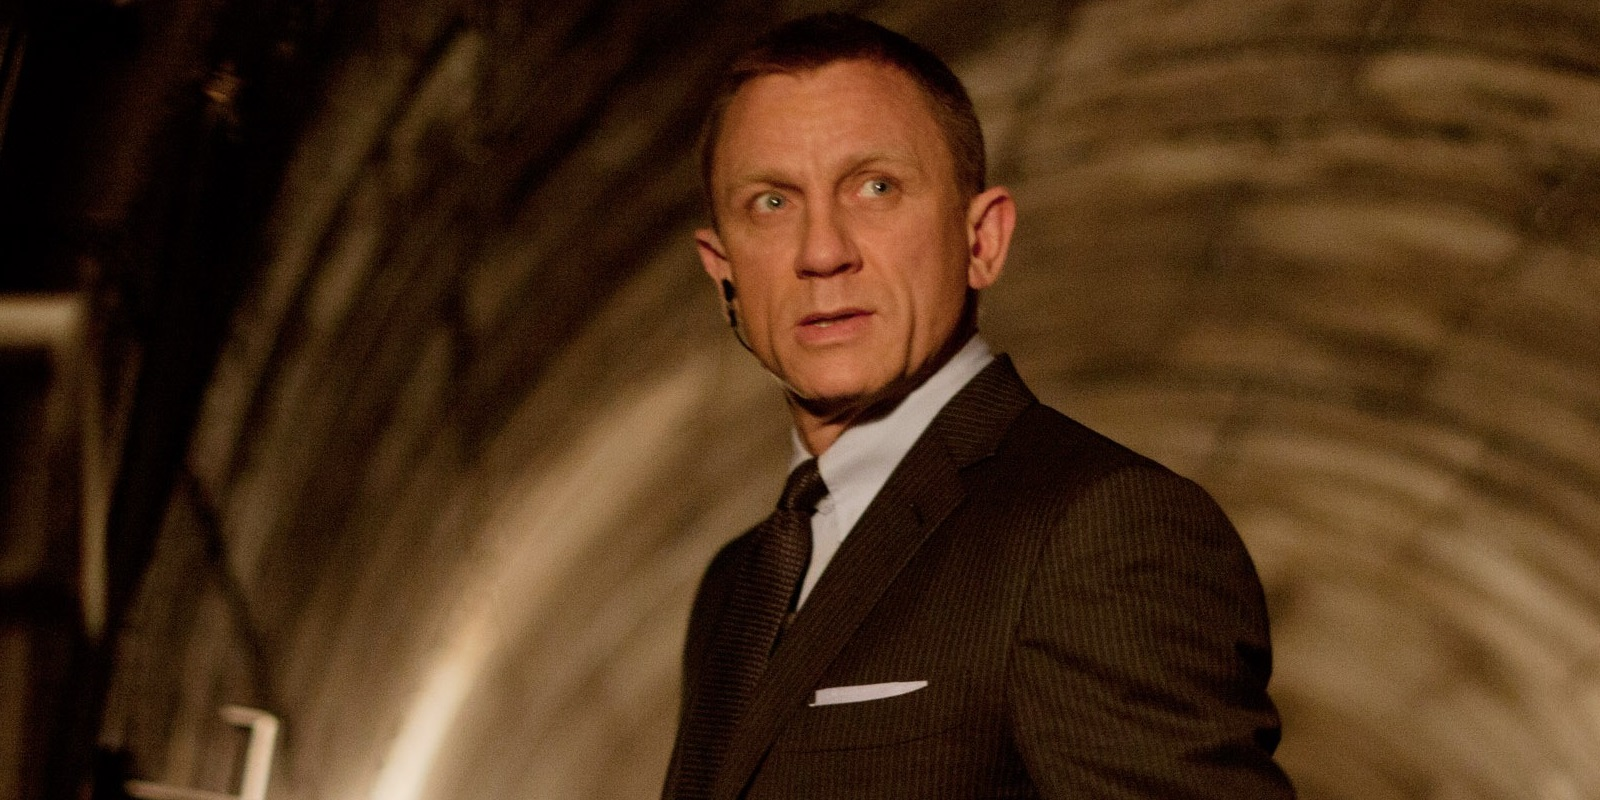 bond 25 rumored plot sounds like bond going fullon